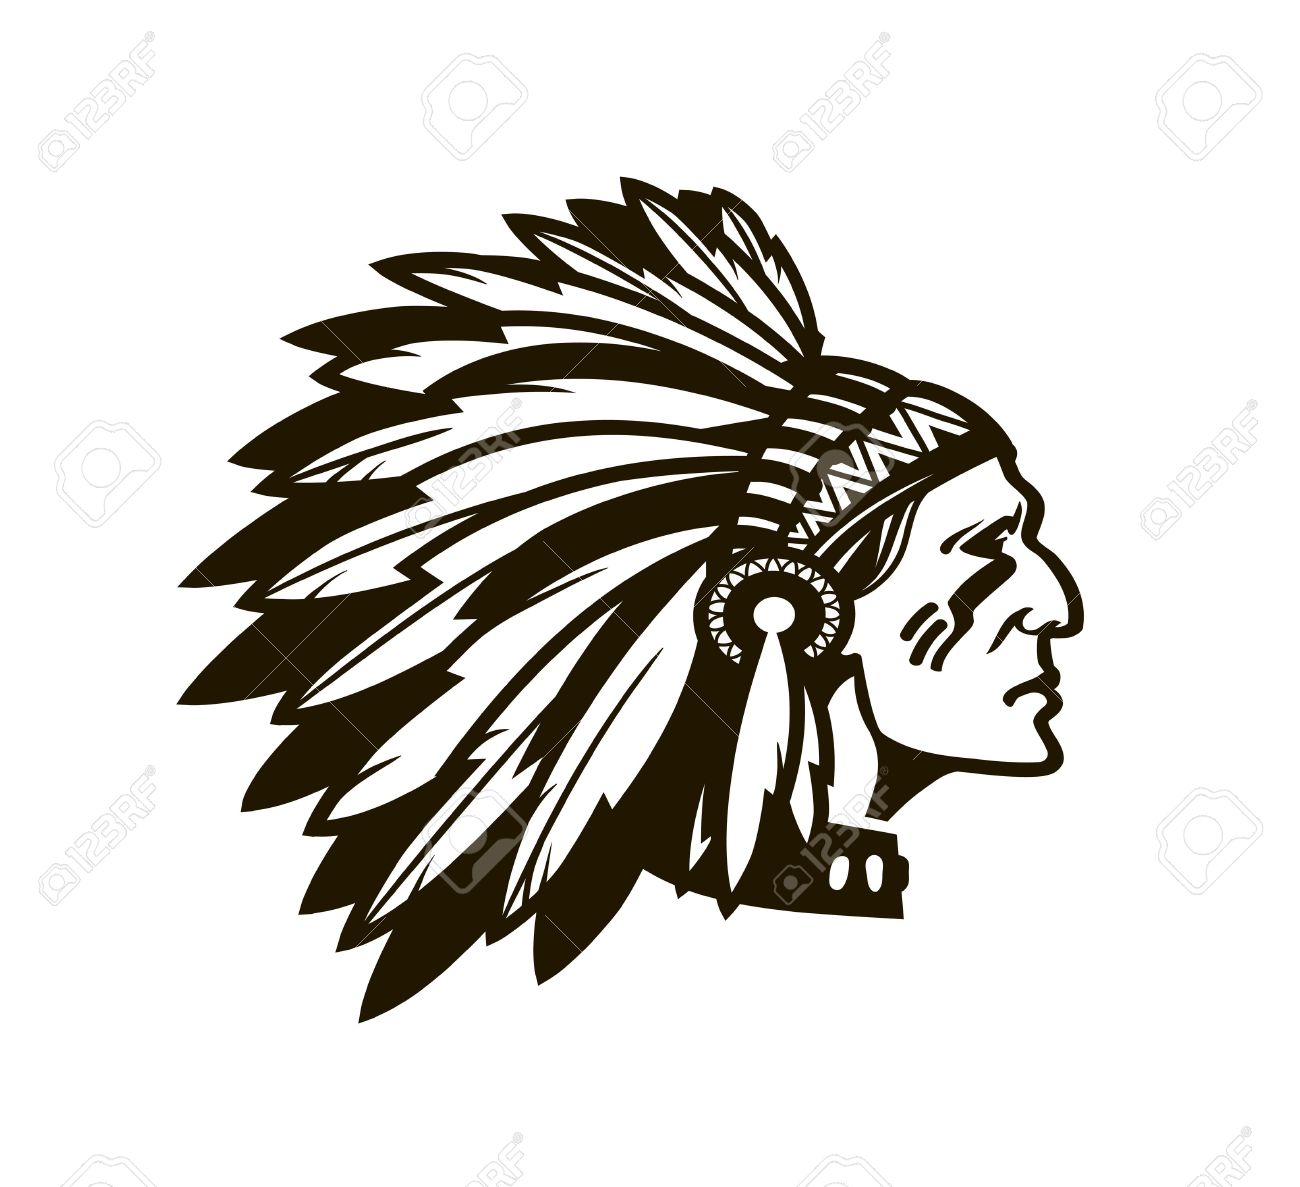 indian chief drawing at getdrawings com free for personal use rh getdrawings com indian headdress clipart indian head logo clip art